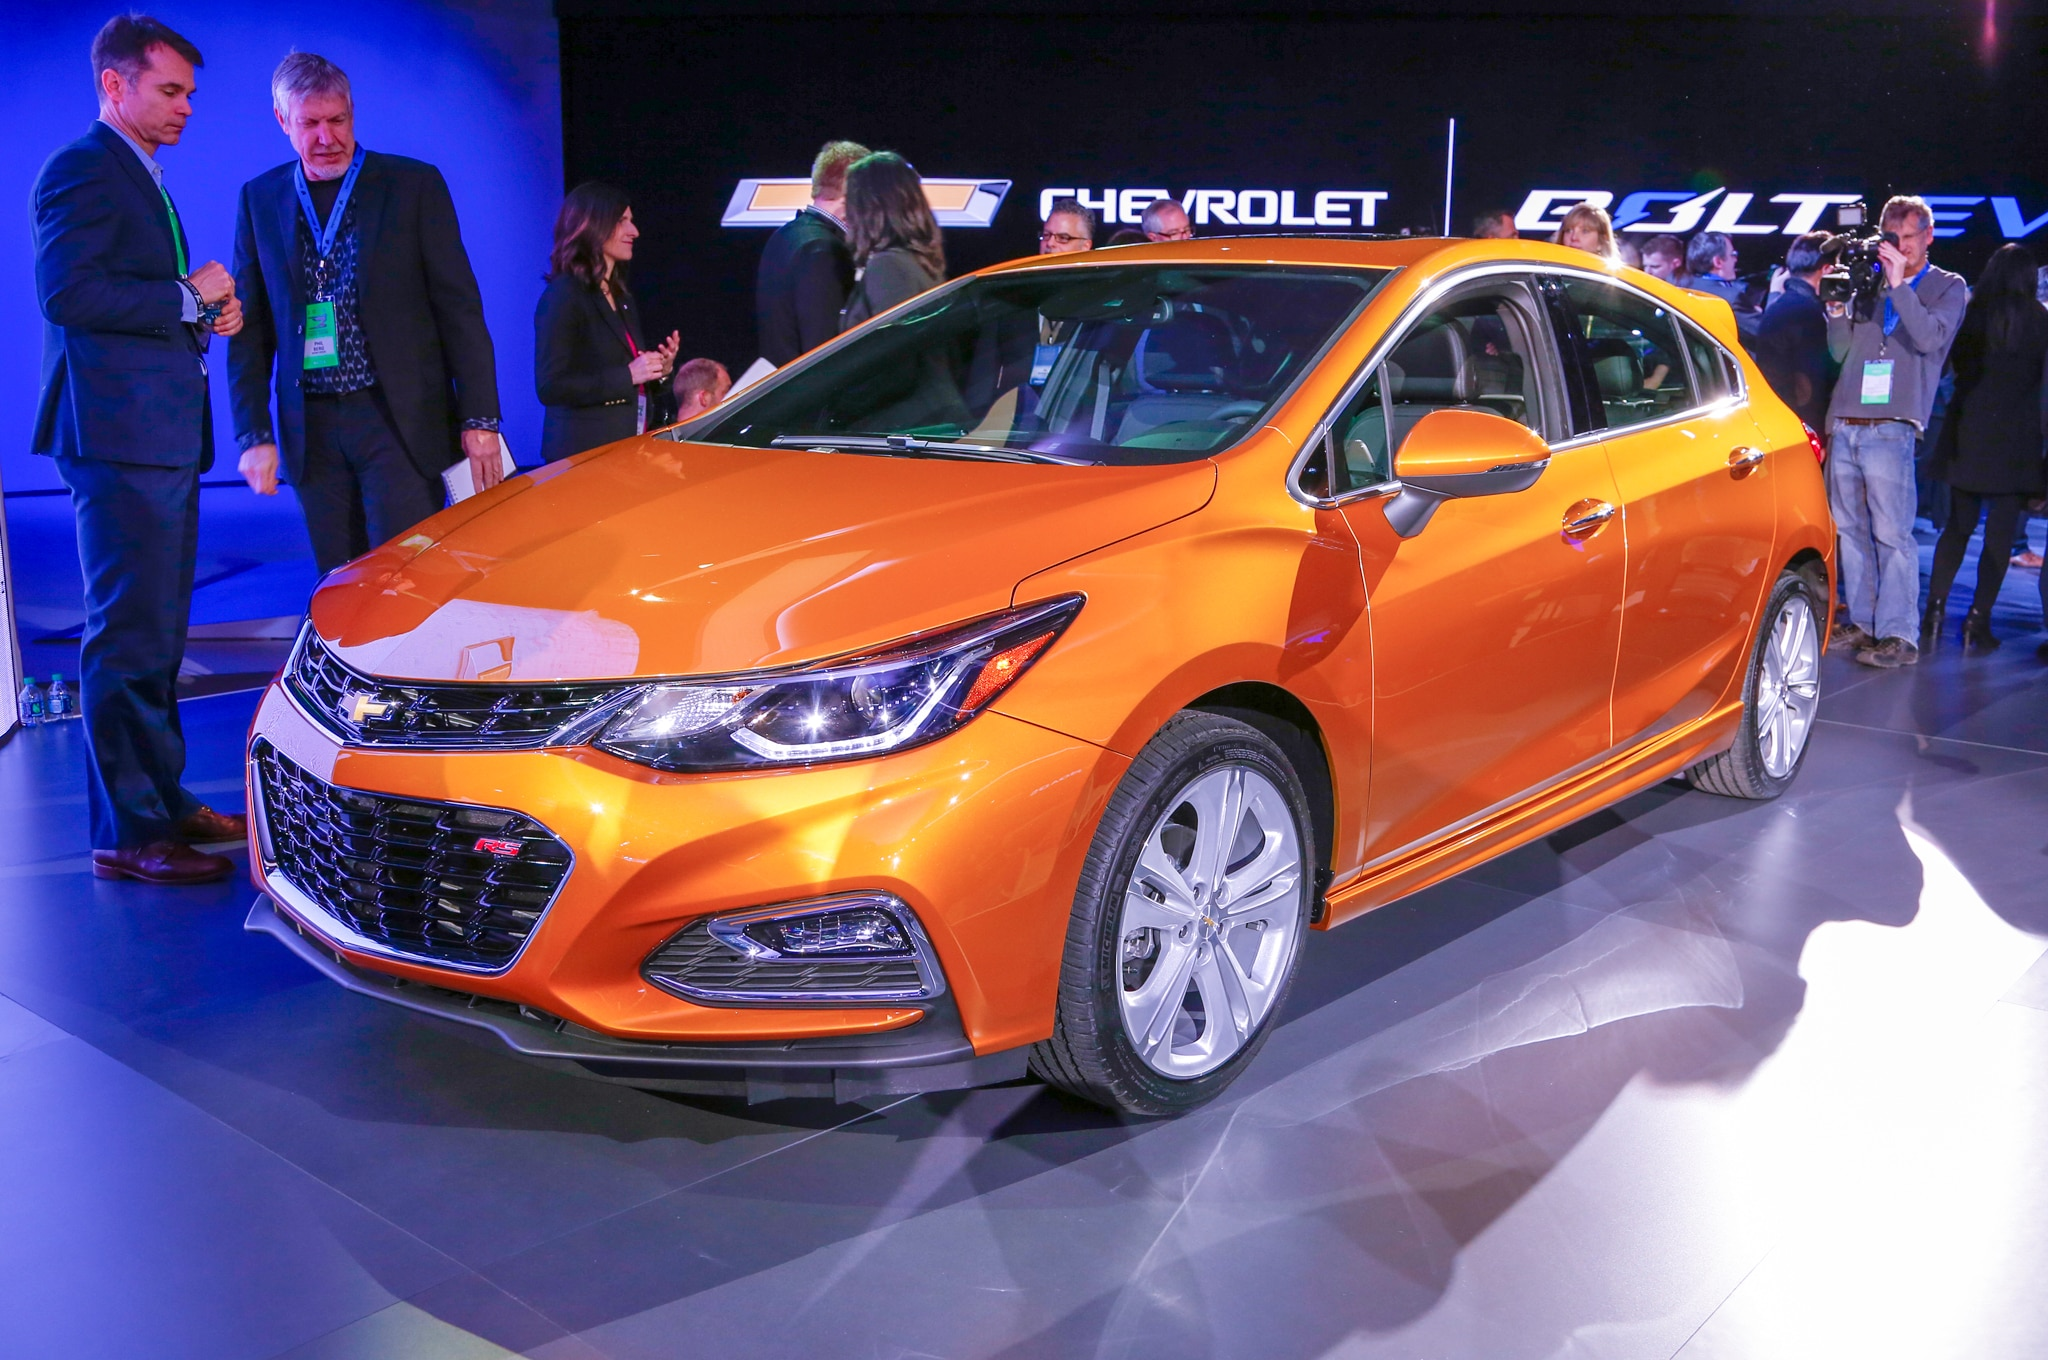 2017 Chevrolet Cruze Hatch Unveiled Ahead of Detroit Debut